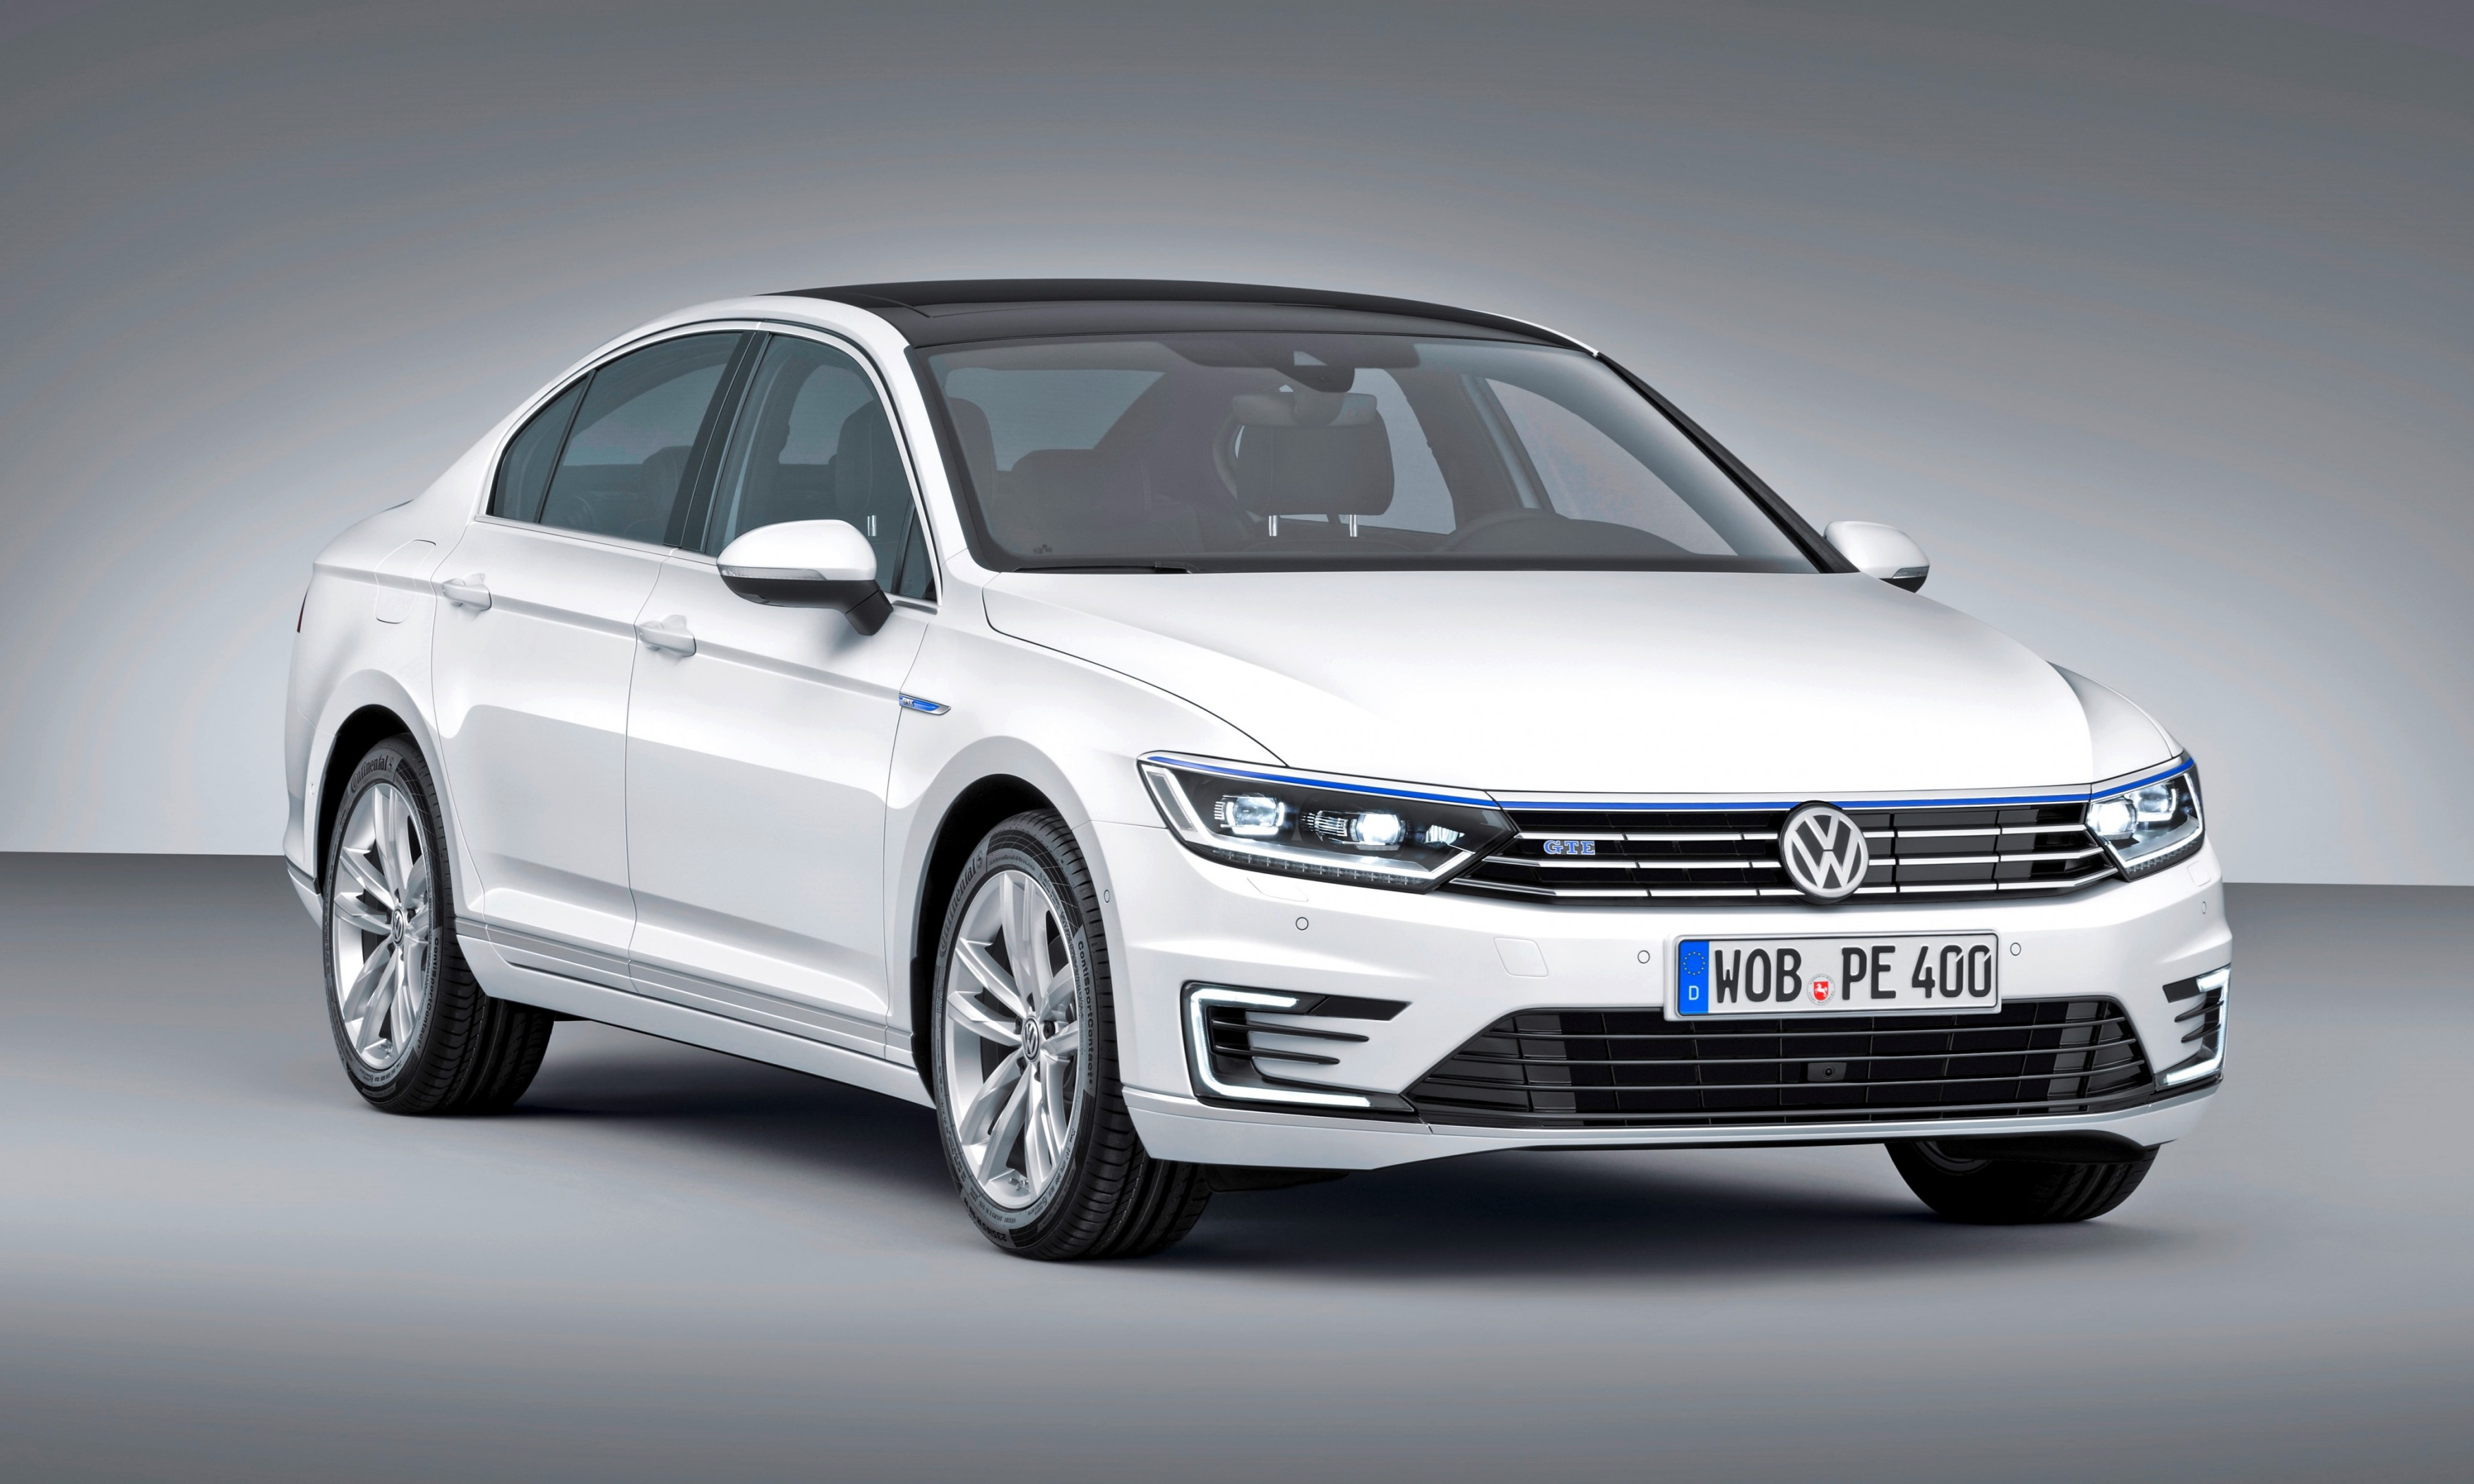 paris debuts 2016 volkswagen passat gte plug in hybrid to arrive in europe october 2015. Black Bedroom Furniture Sets. Home Design Ideas